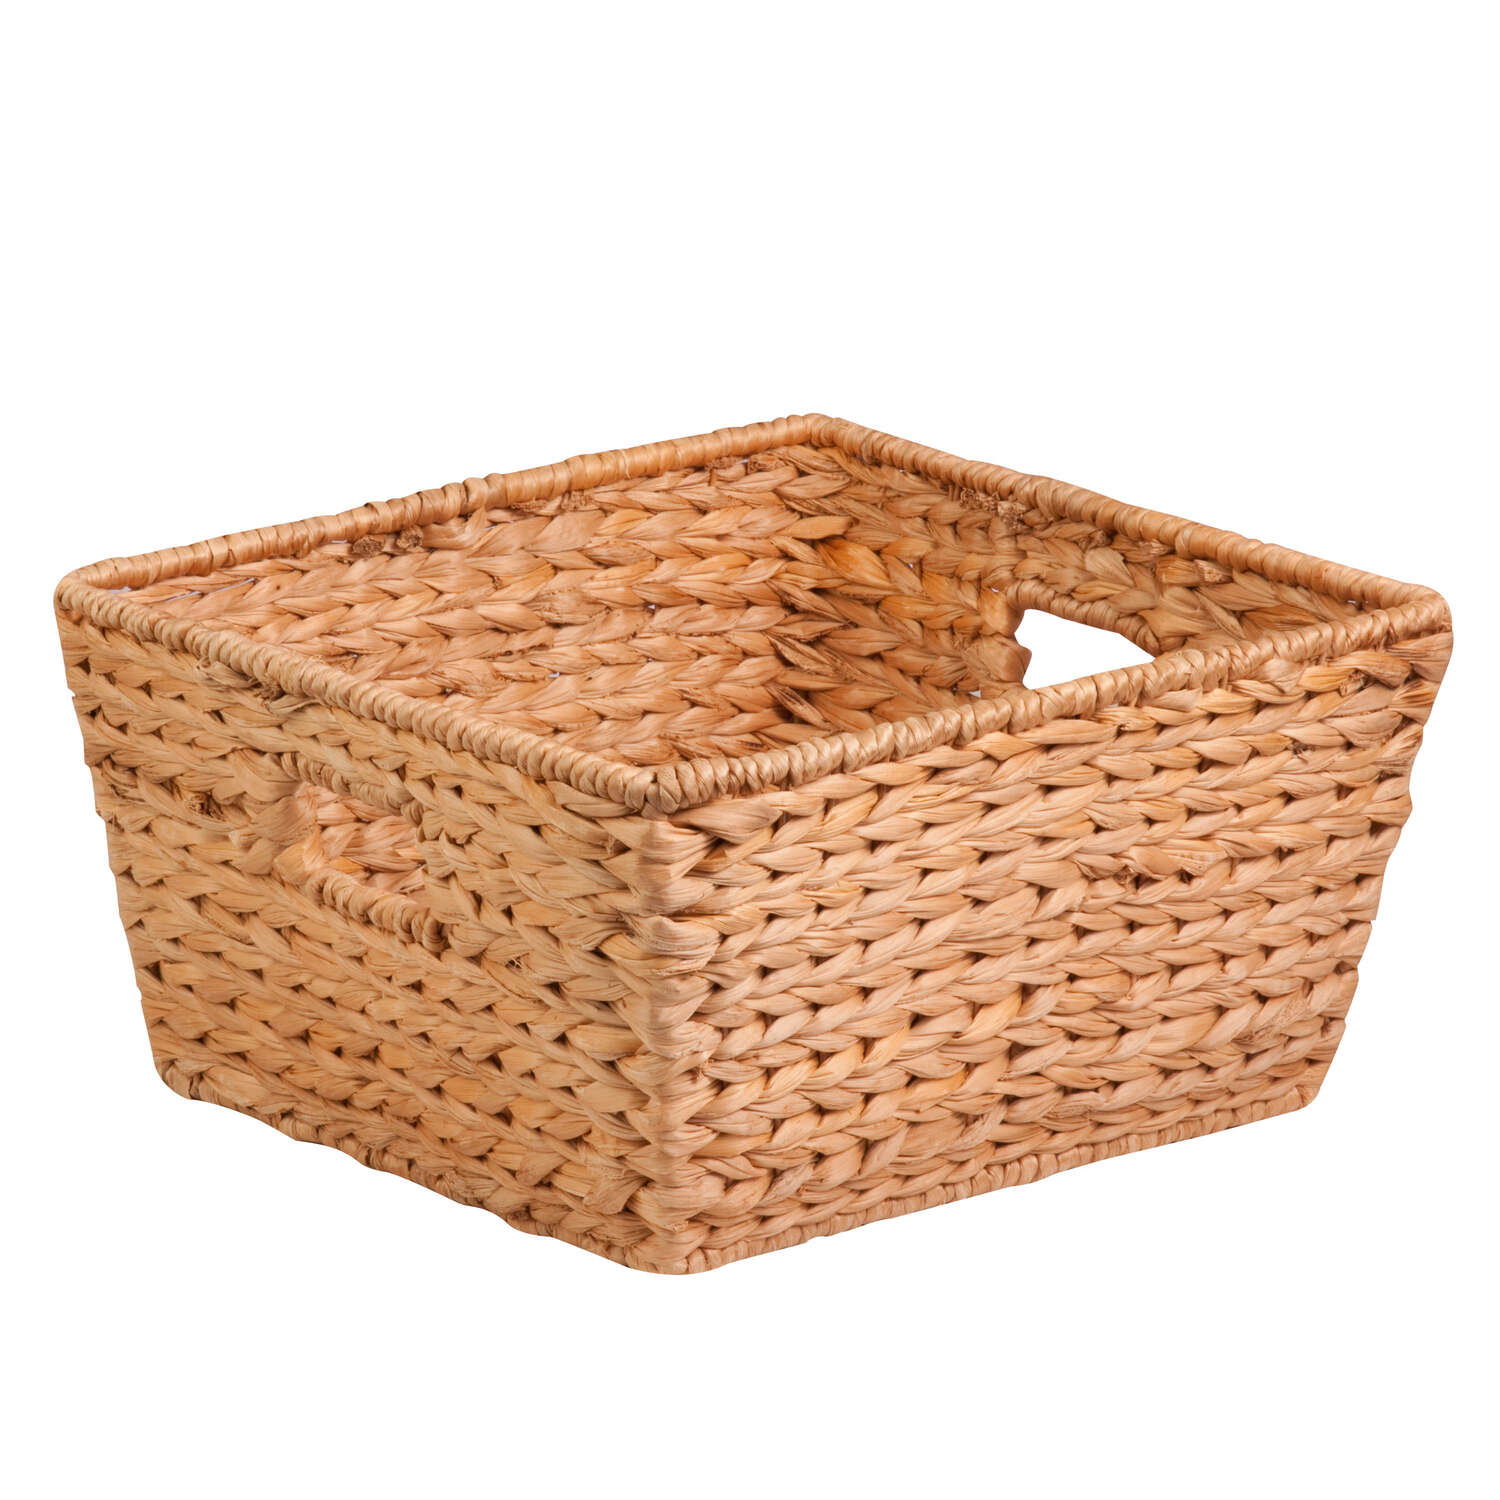 Honey Can Do  Banana Leaf  15 in. W x 15 in. L x 8 in. H Brown/Natural  Basket